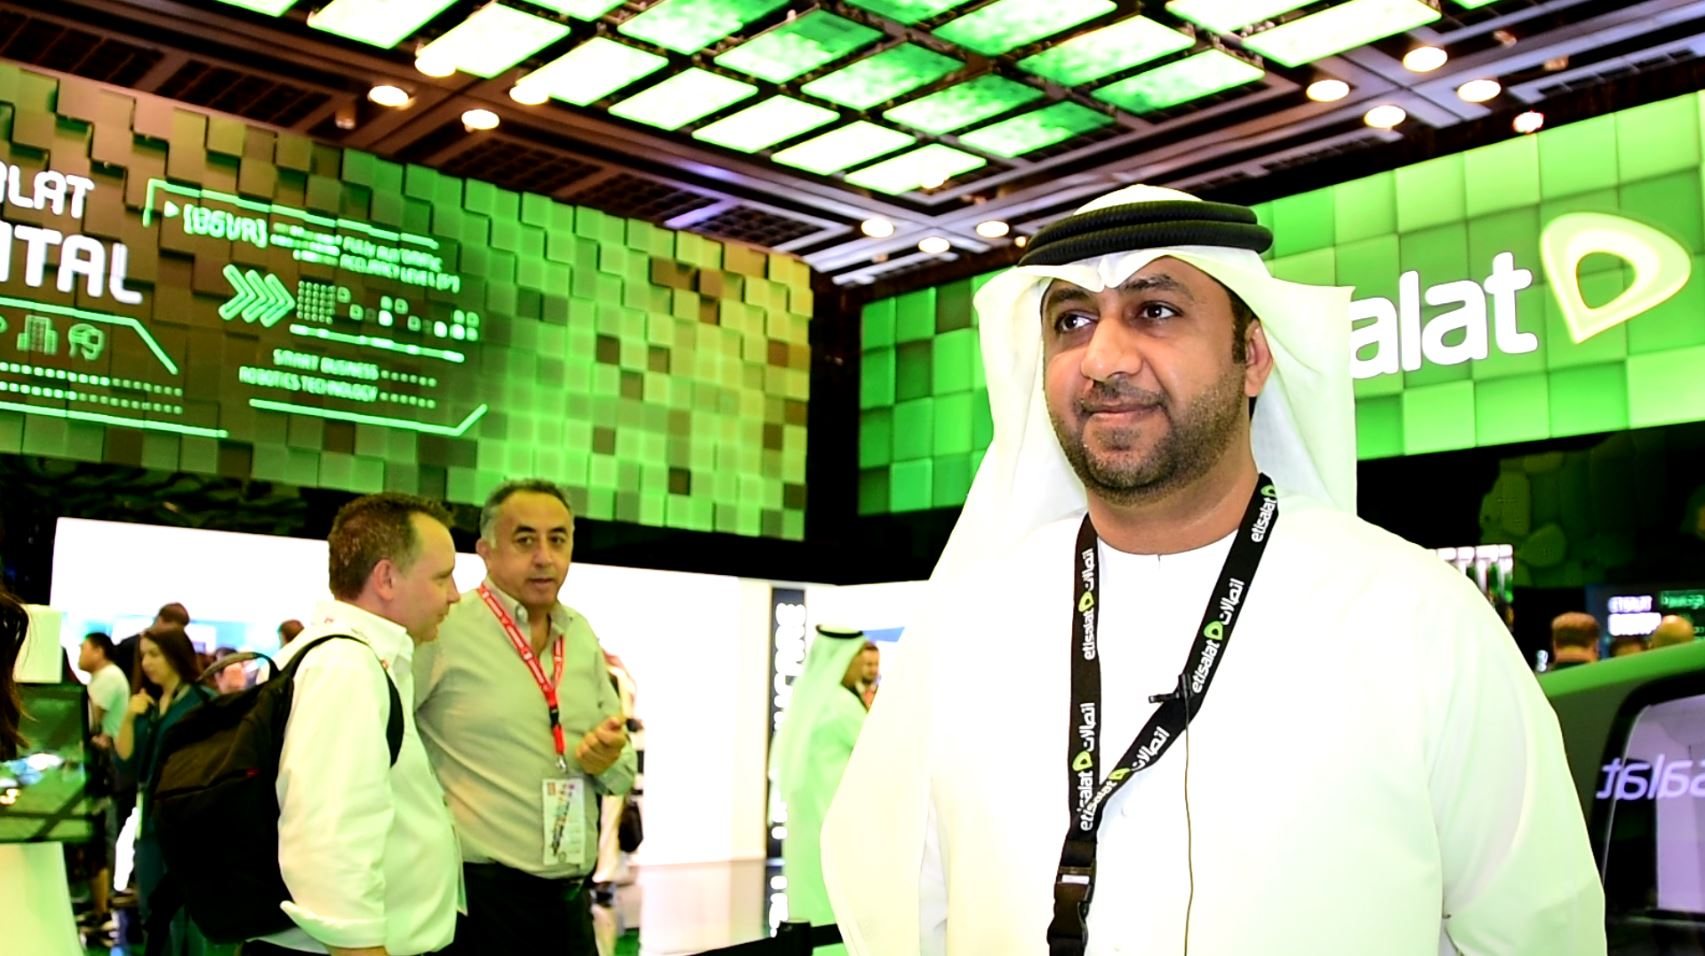 Etisalat takes a giant leap investing in futuristic technologies with the launch of 5G network